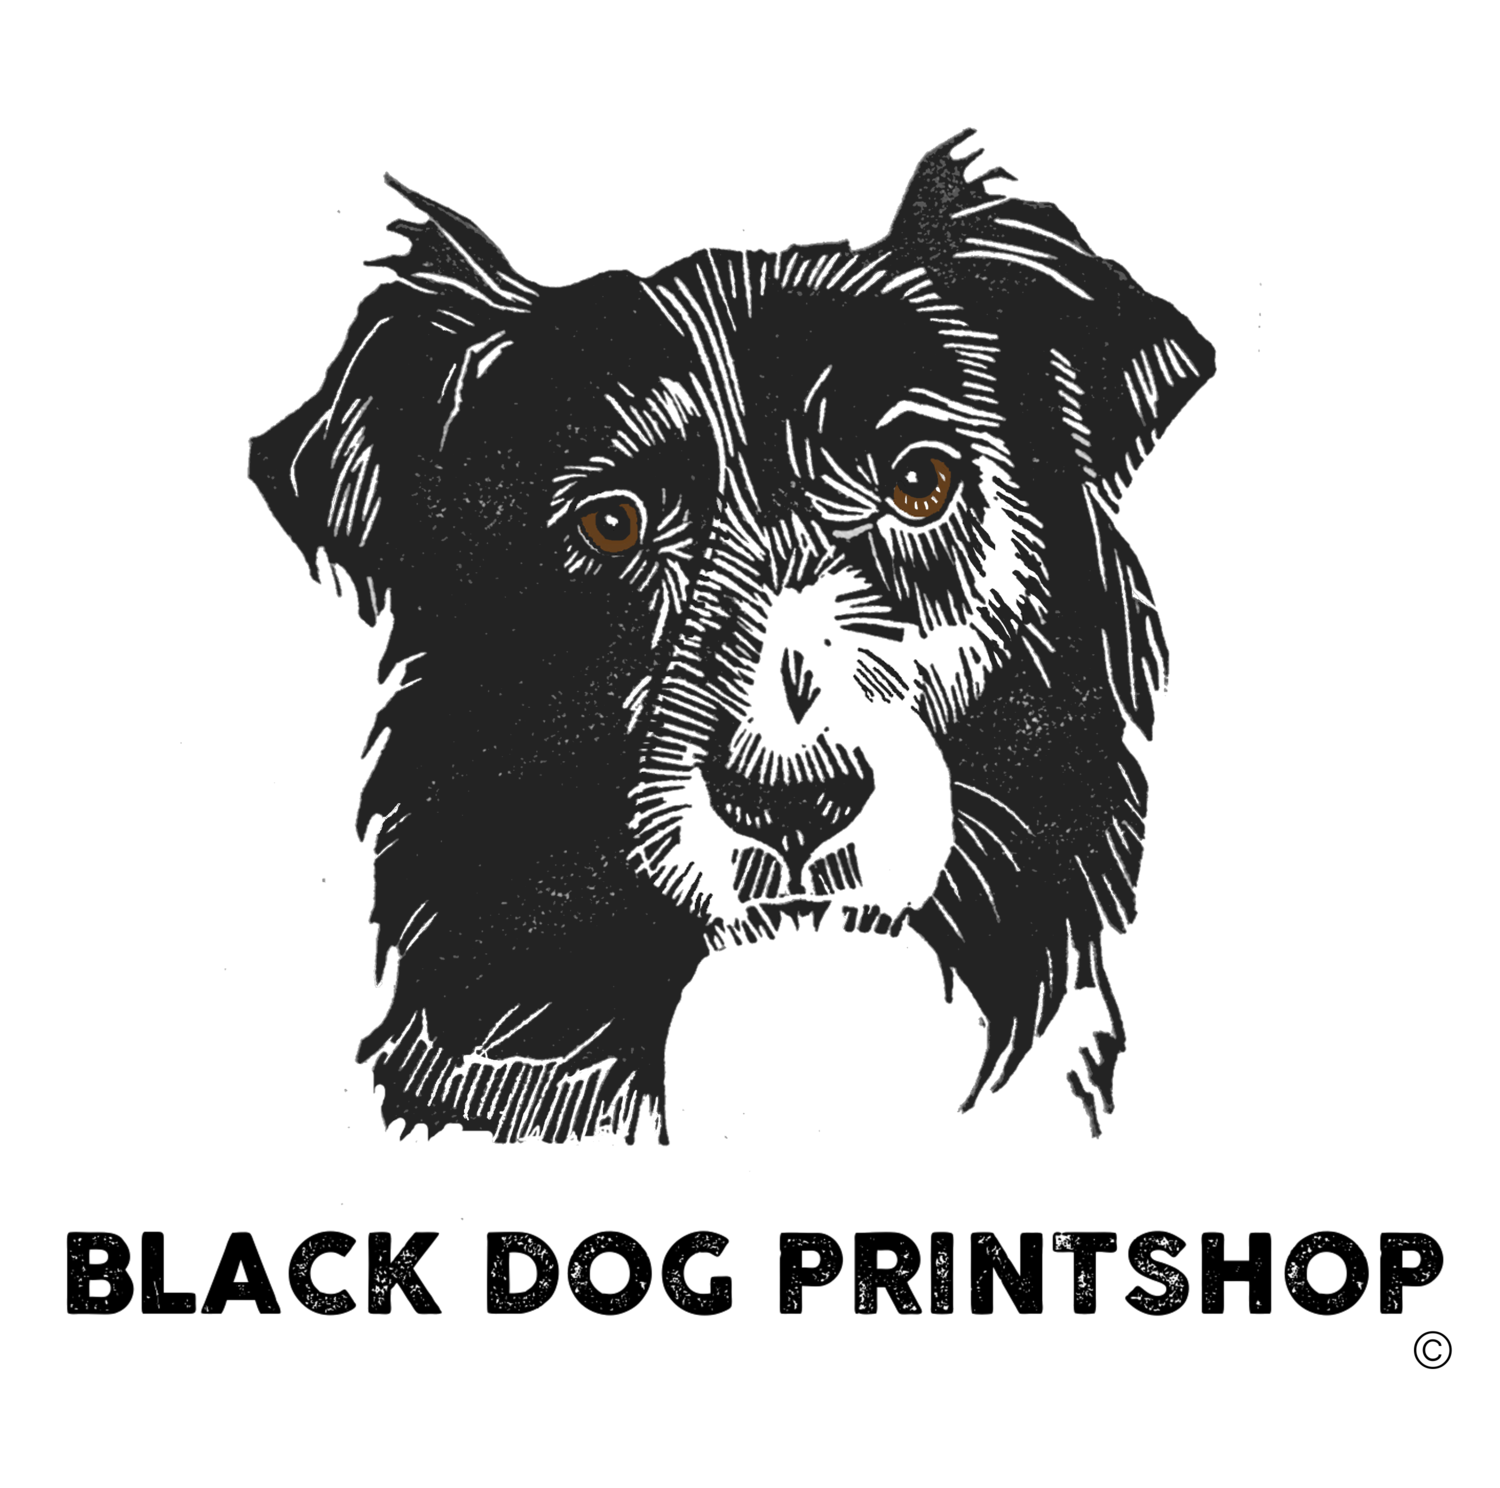 Black Dog Printshop